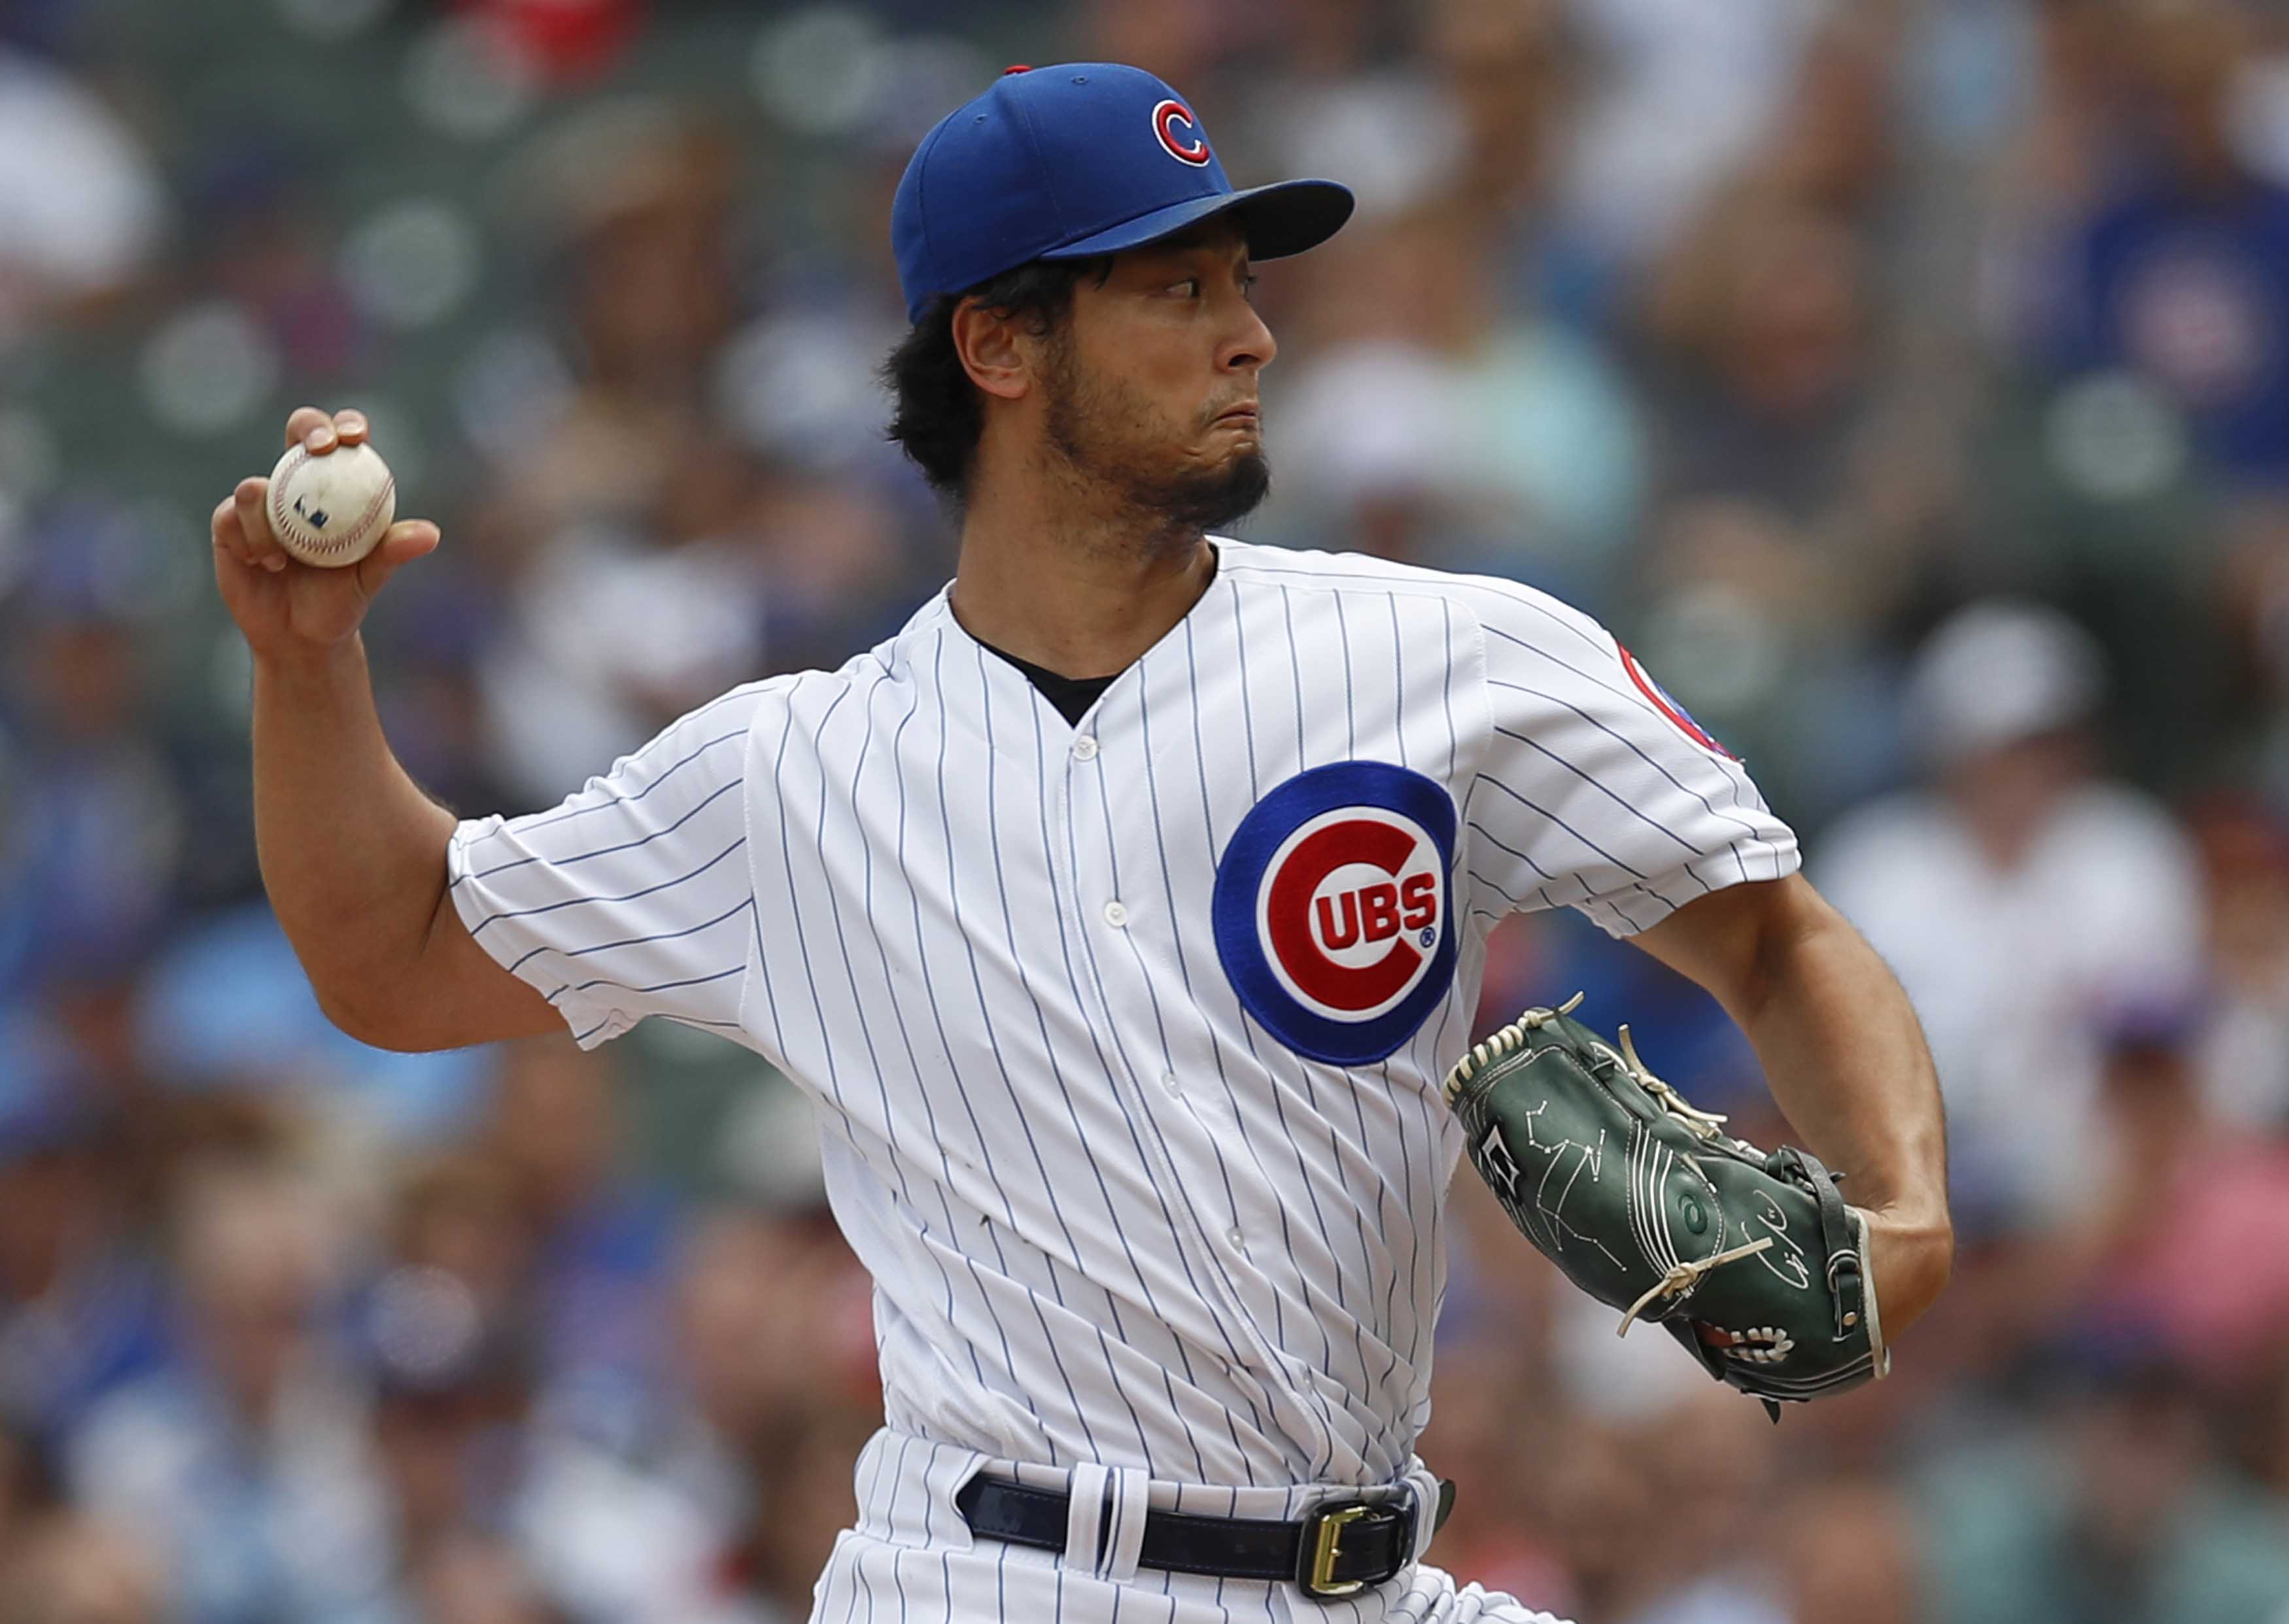 Cubs trade Yu Darvish to Padres for Zach Davies in a blockbuster deal